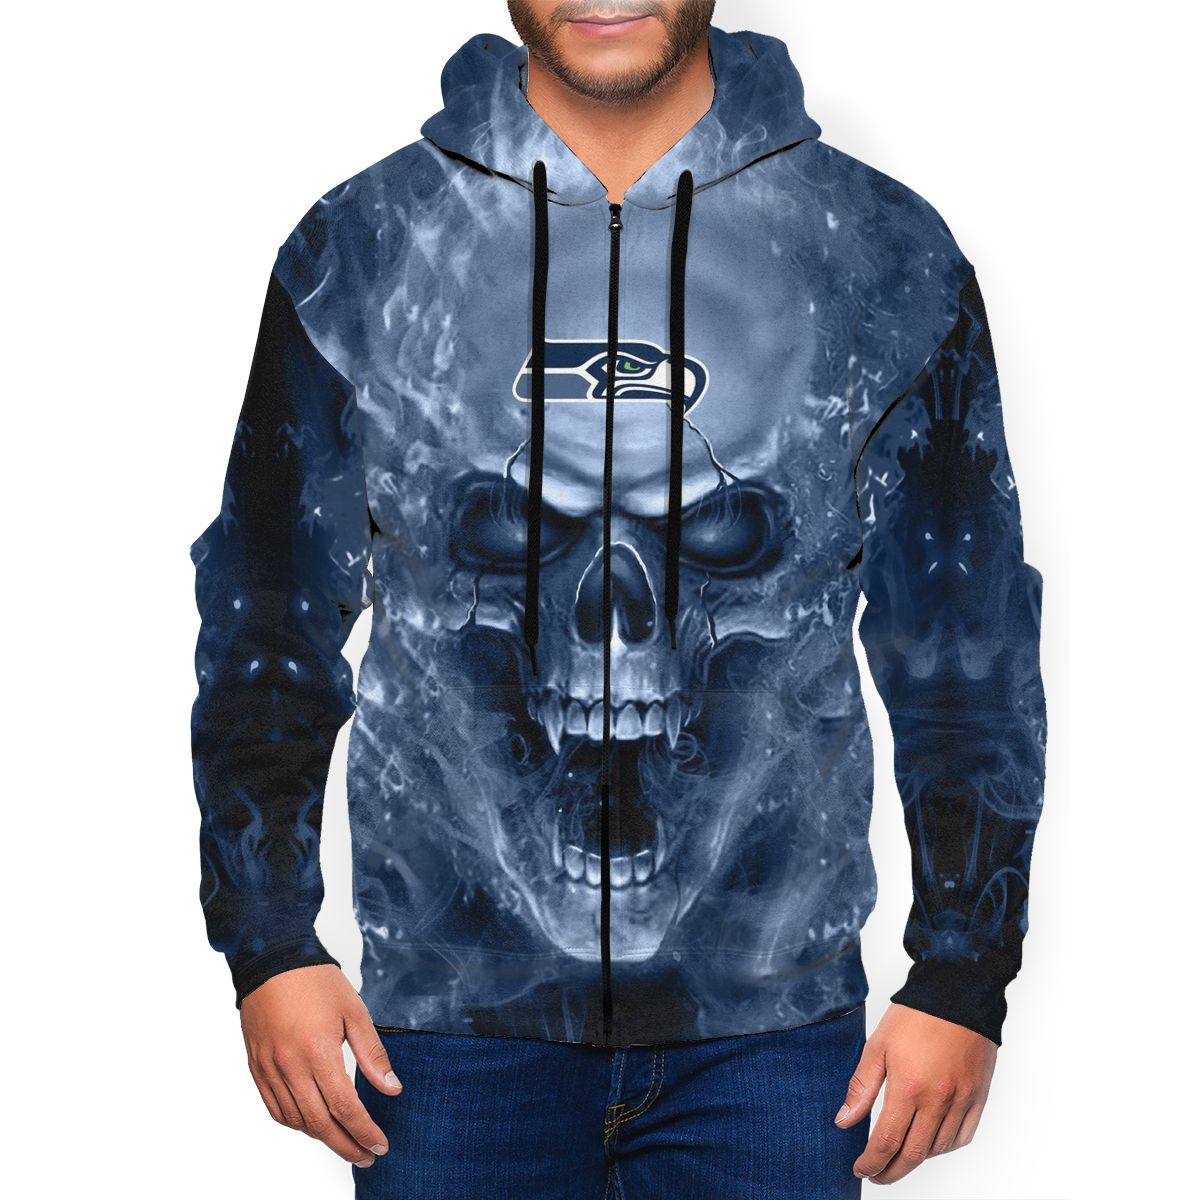 3D Skull Seahawks Men's Zip Hooded Sweatshirt